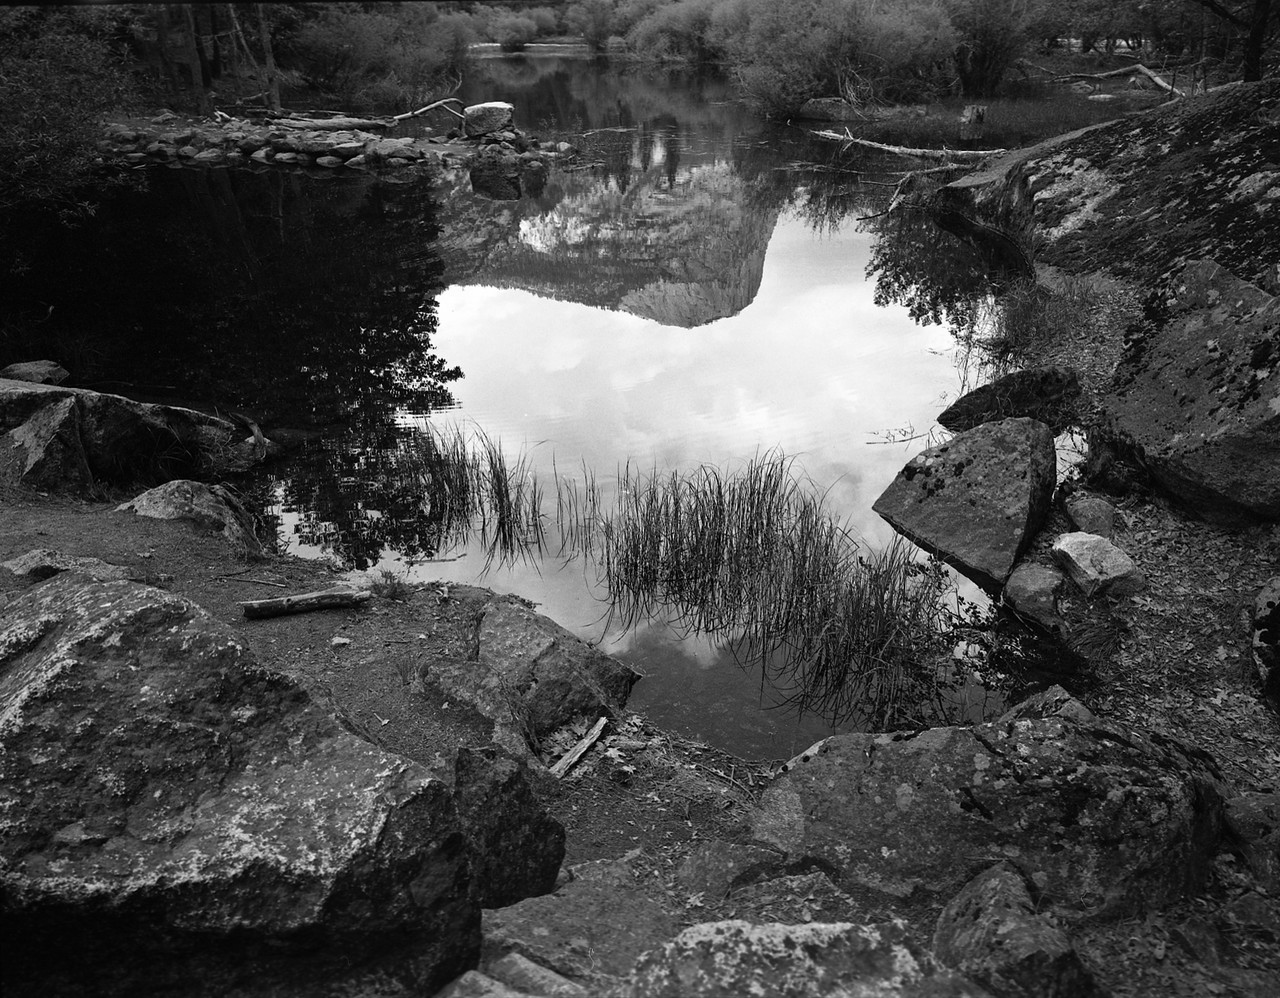 Mt. Watkins Reflection, Yosemite National Park. 2015. Silver Gelatin Print.